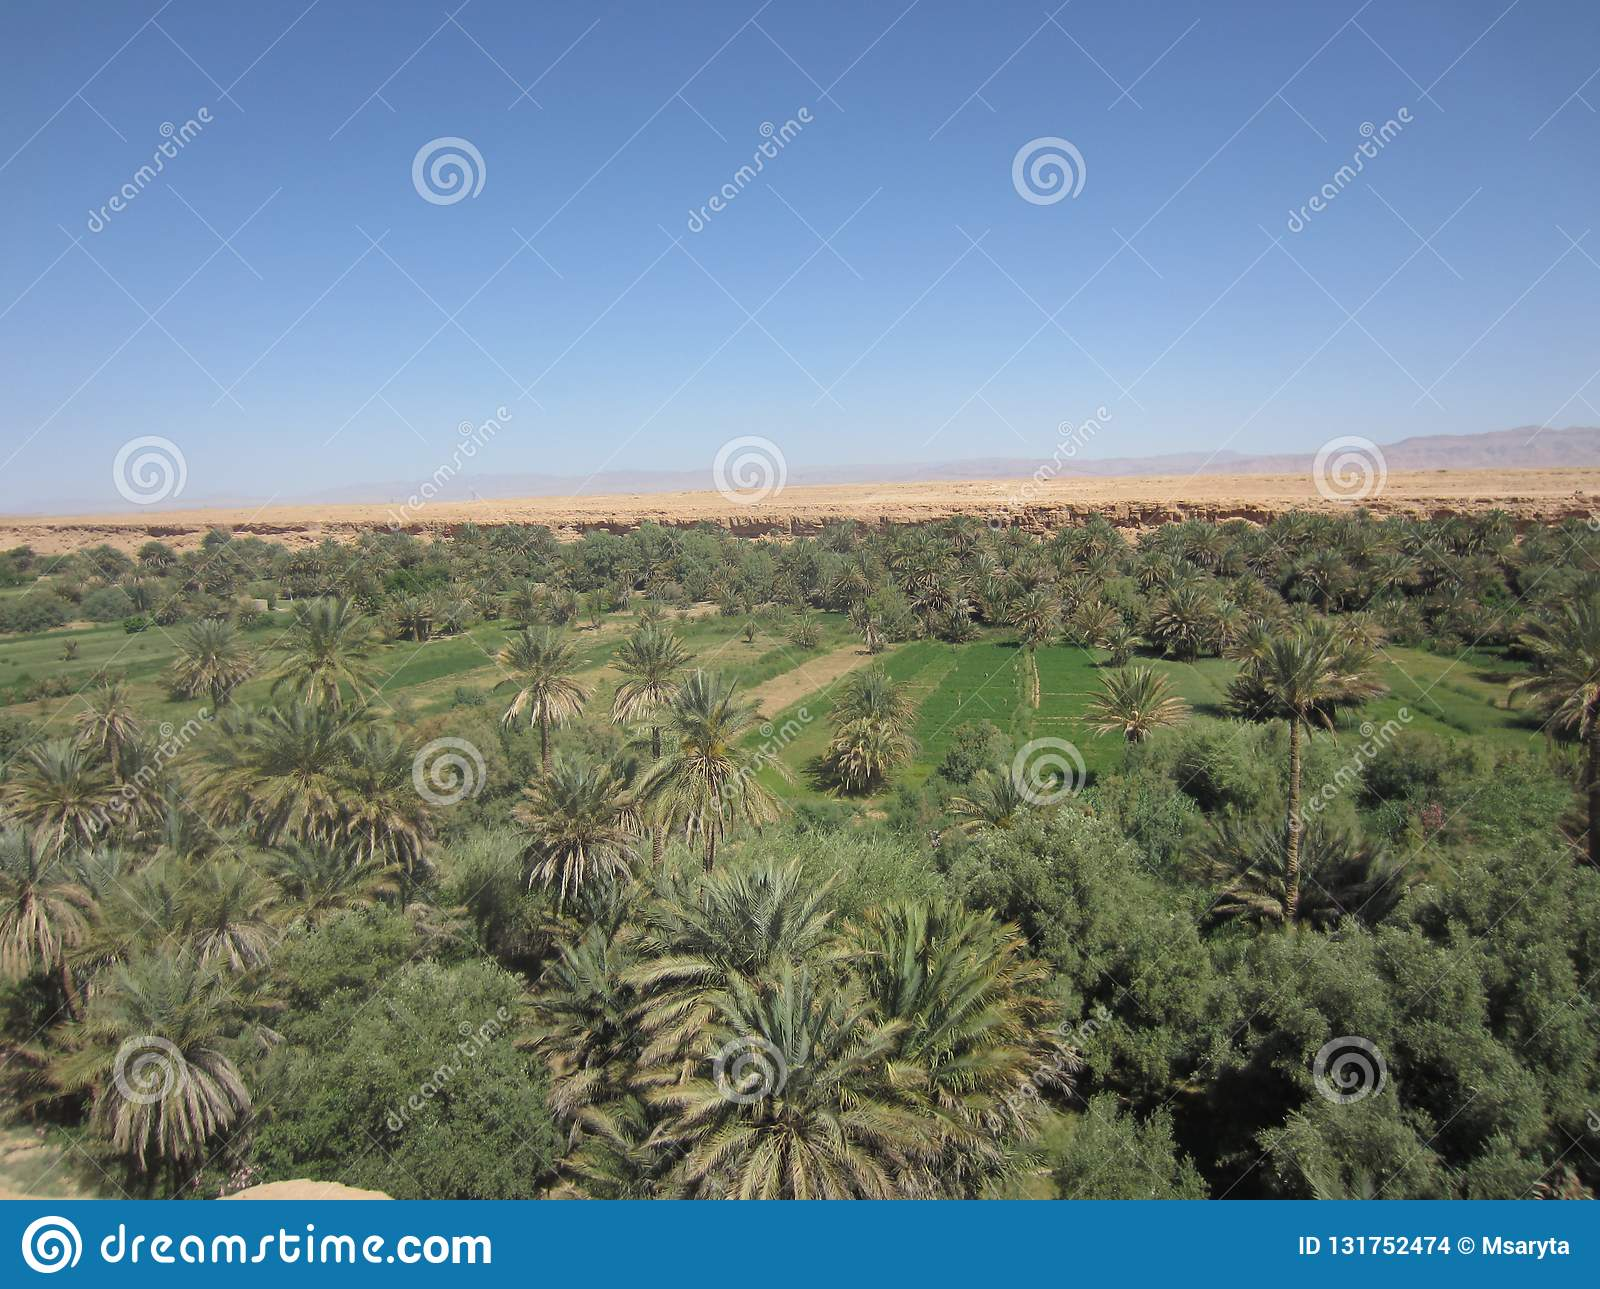 the oasis of elrrachidia in morocco